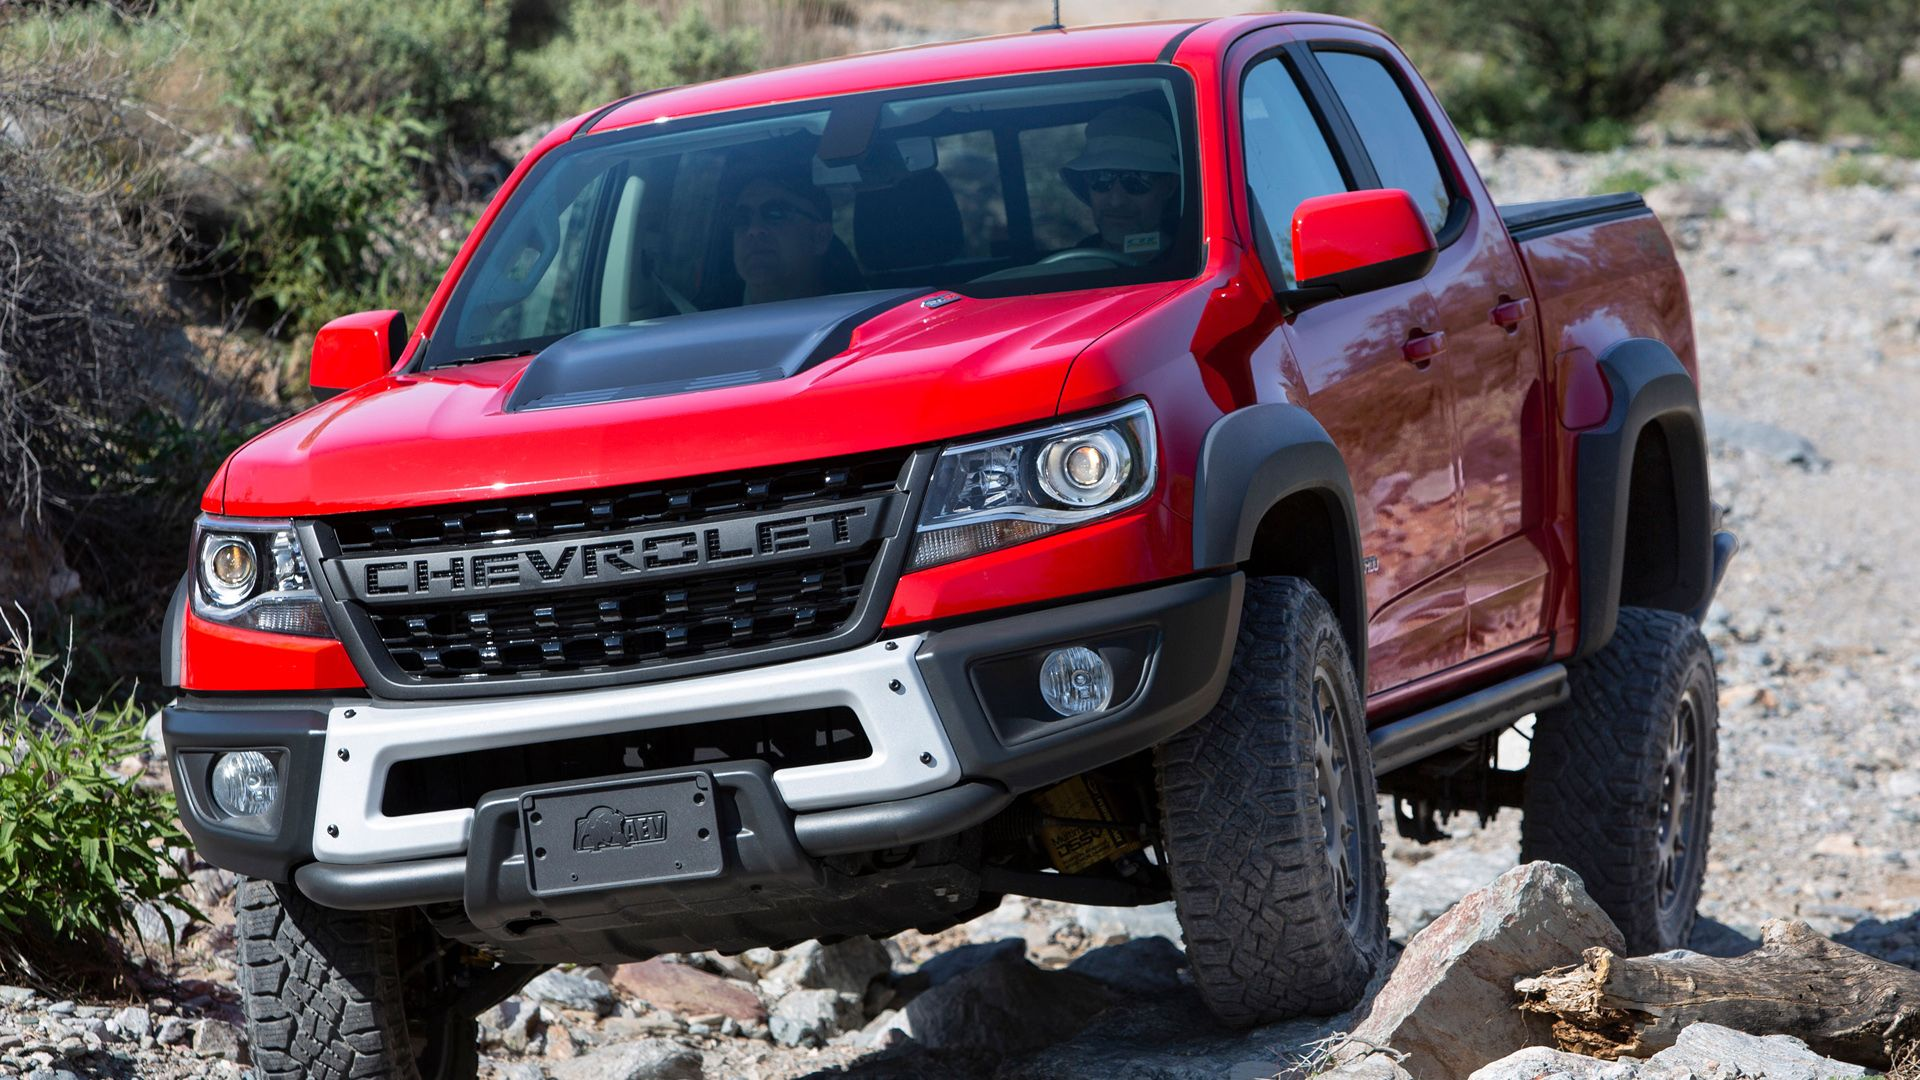 The 2019 Chevy Colorado Zr2 Bison Is Chevy S First Collaboration